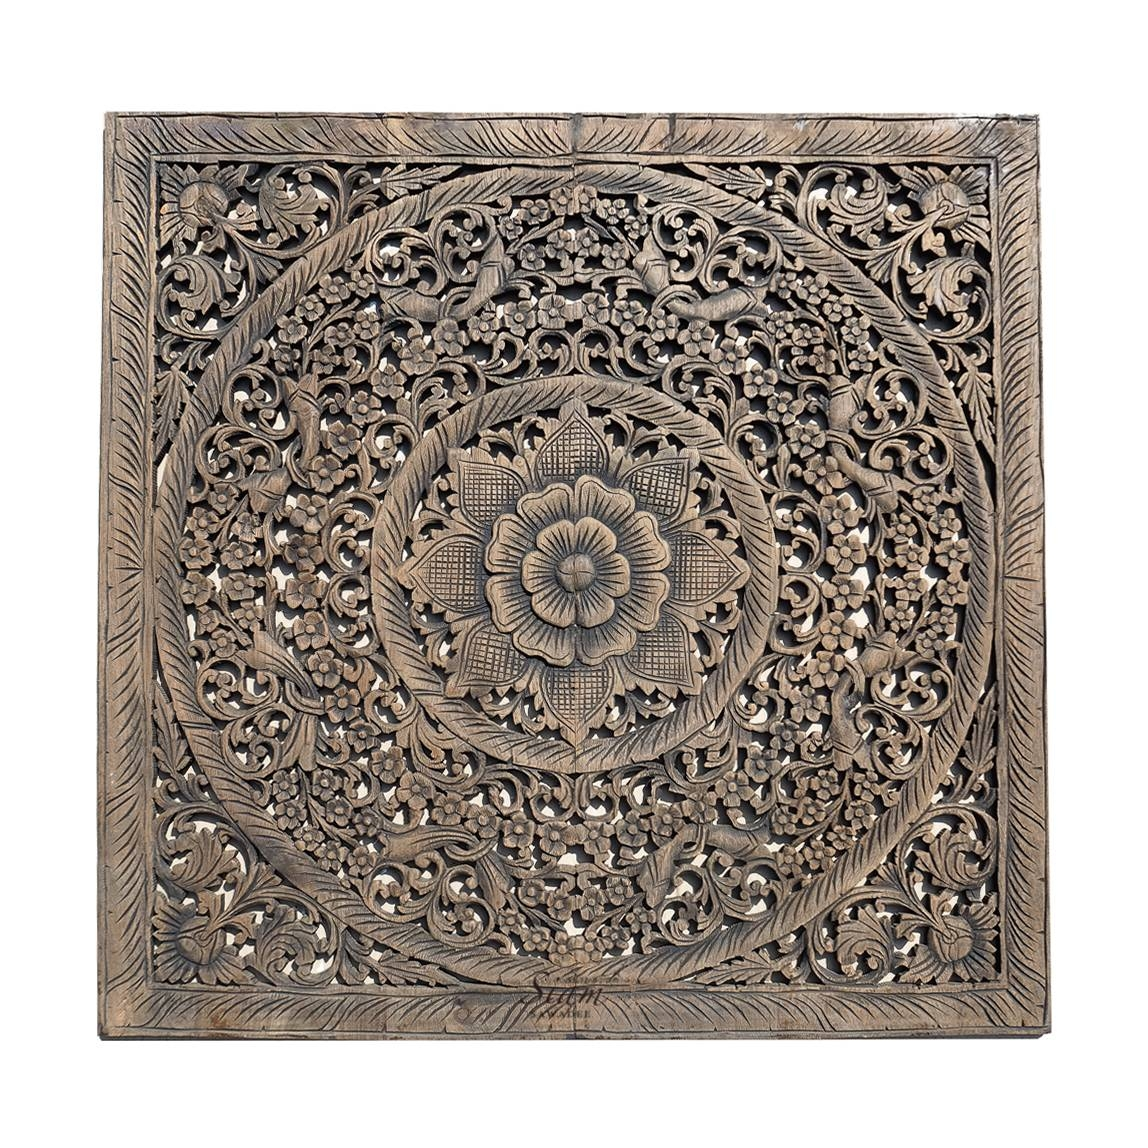 Balinese Antique Wood Carving Wall Art Panel – Siam Sawadee Intended For Latest Balinese Wall Art (View 2 of 30)